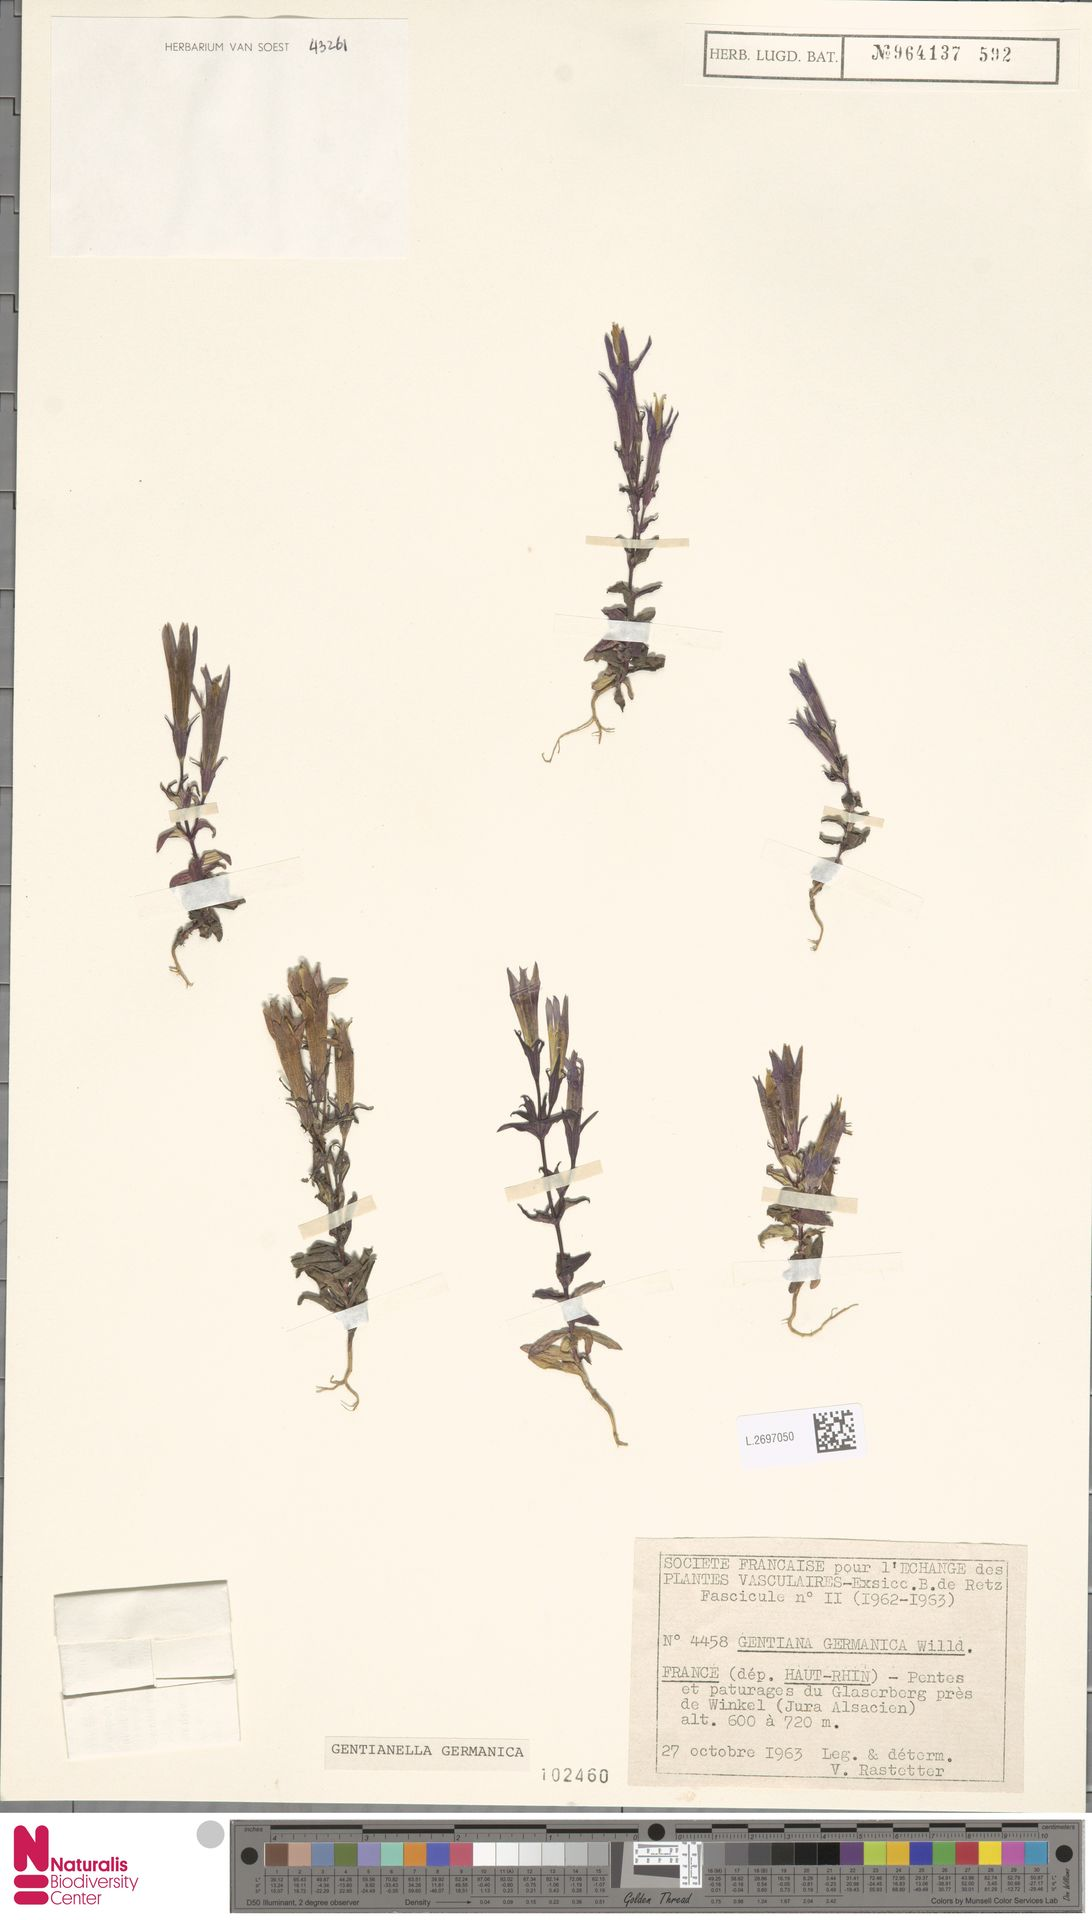 L.2697050 | Gentianella germanica (Willd.) E.F.Warb.